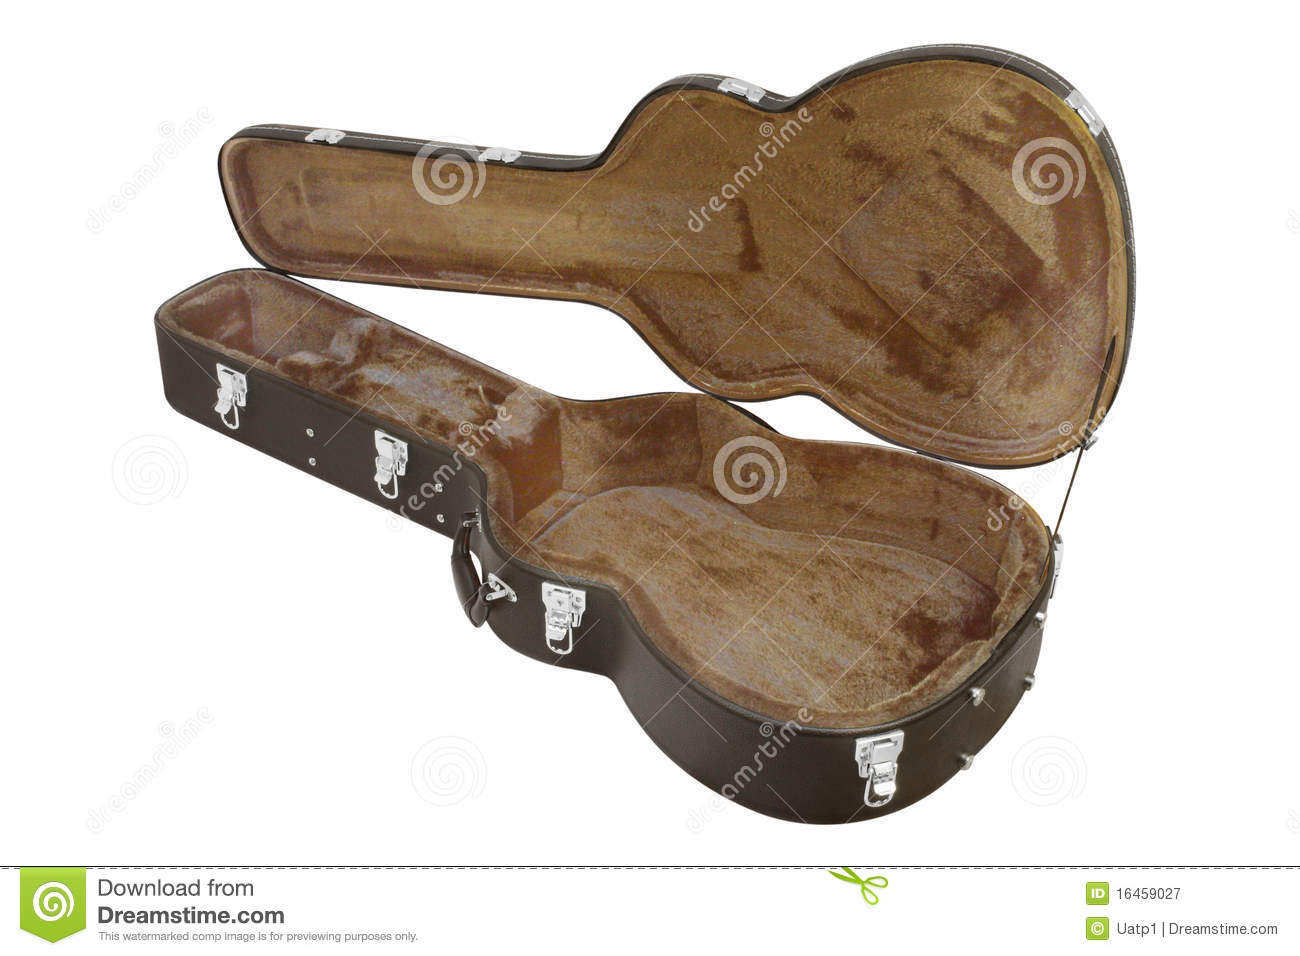 the image of open guitar case stock image image of carry leather 16459027. Black Bedroom Furniture Sets. Home Design Ideas